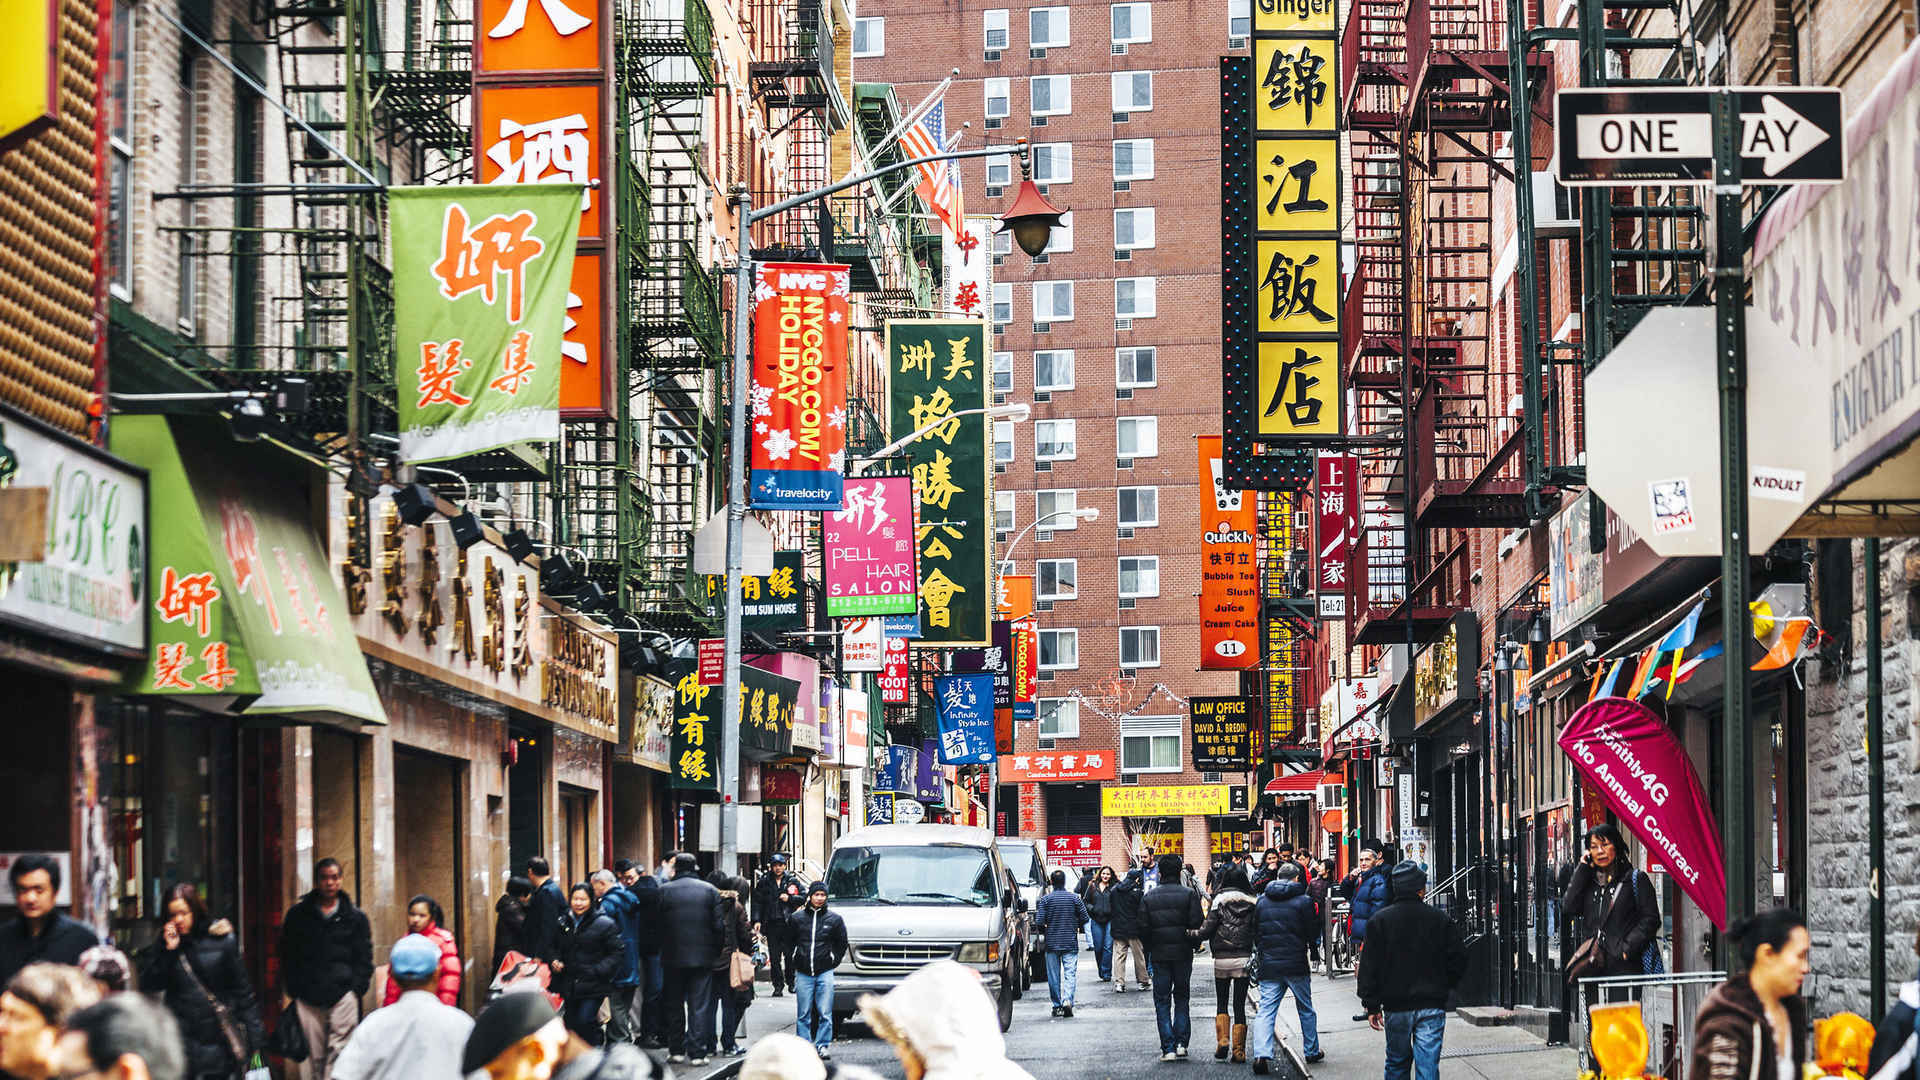 Street scene in Chinatown, New York